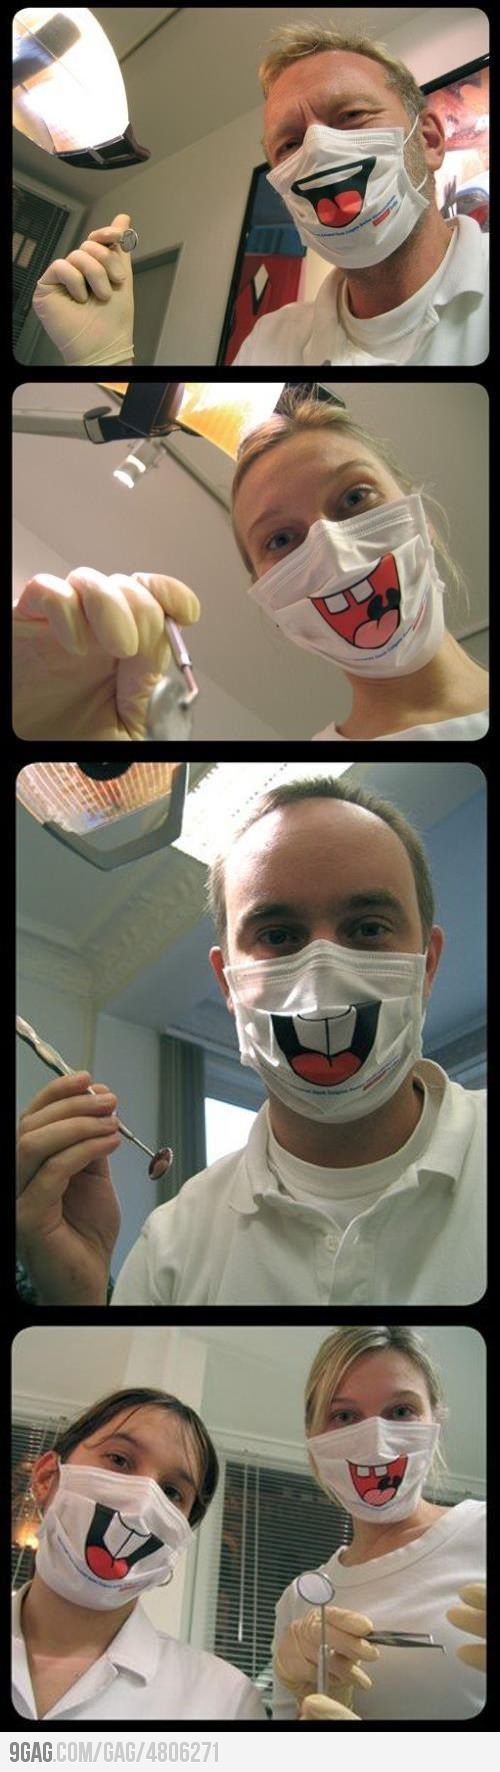 Just some dentists...